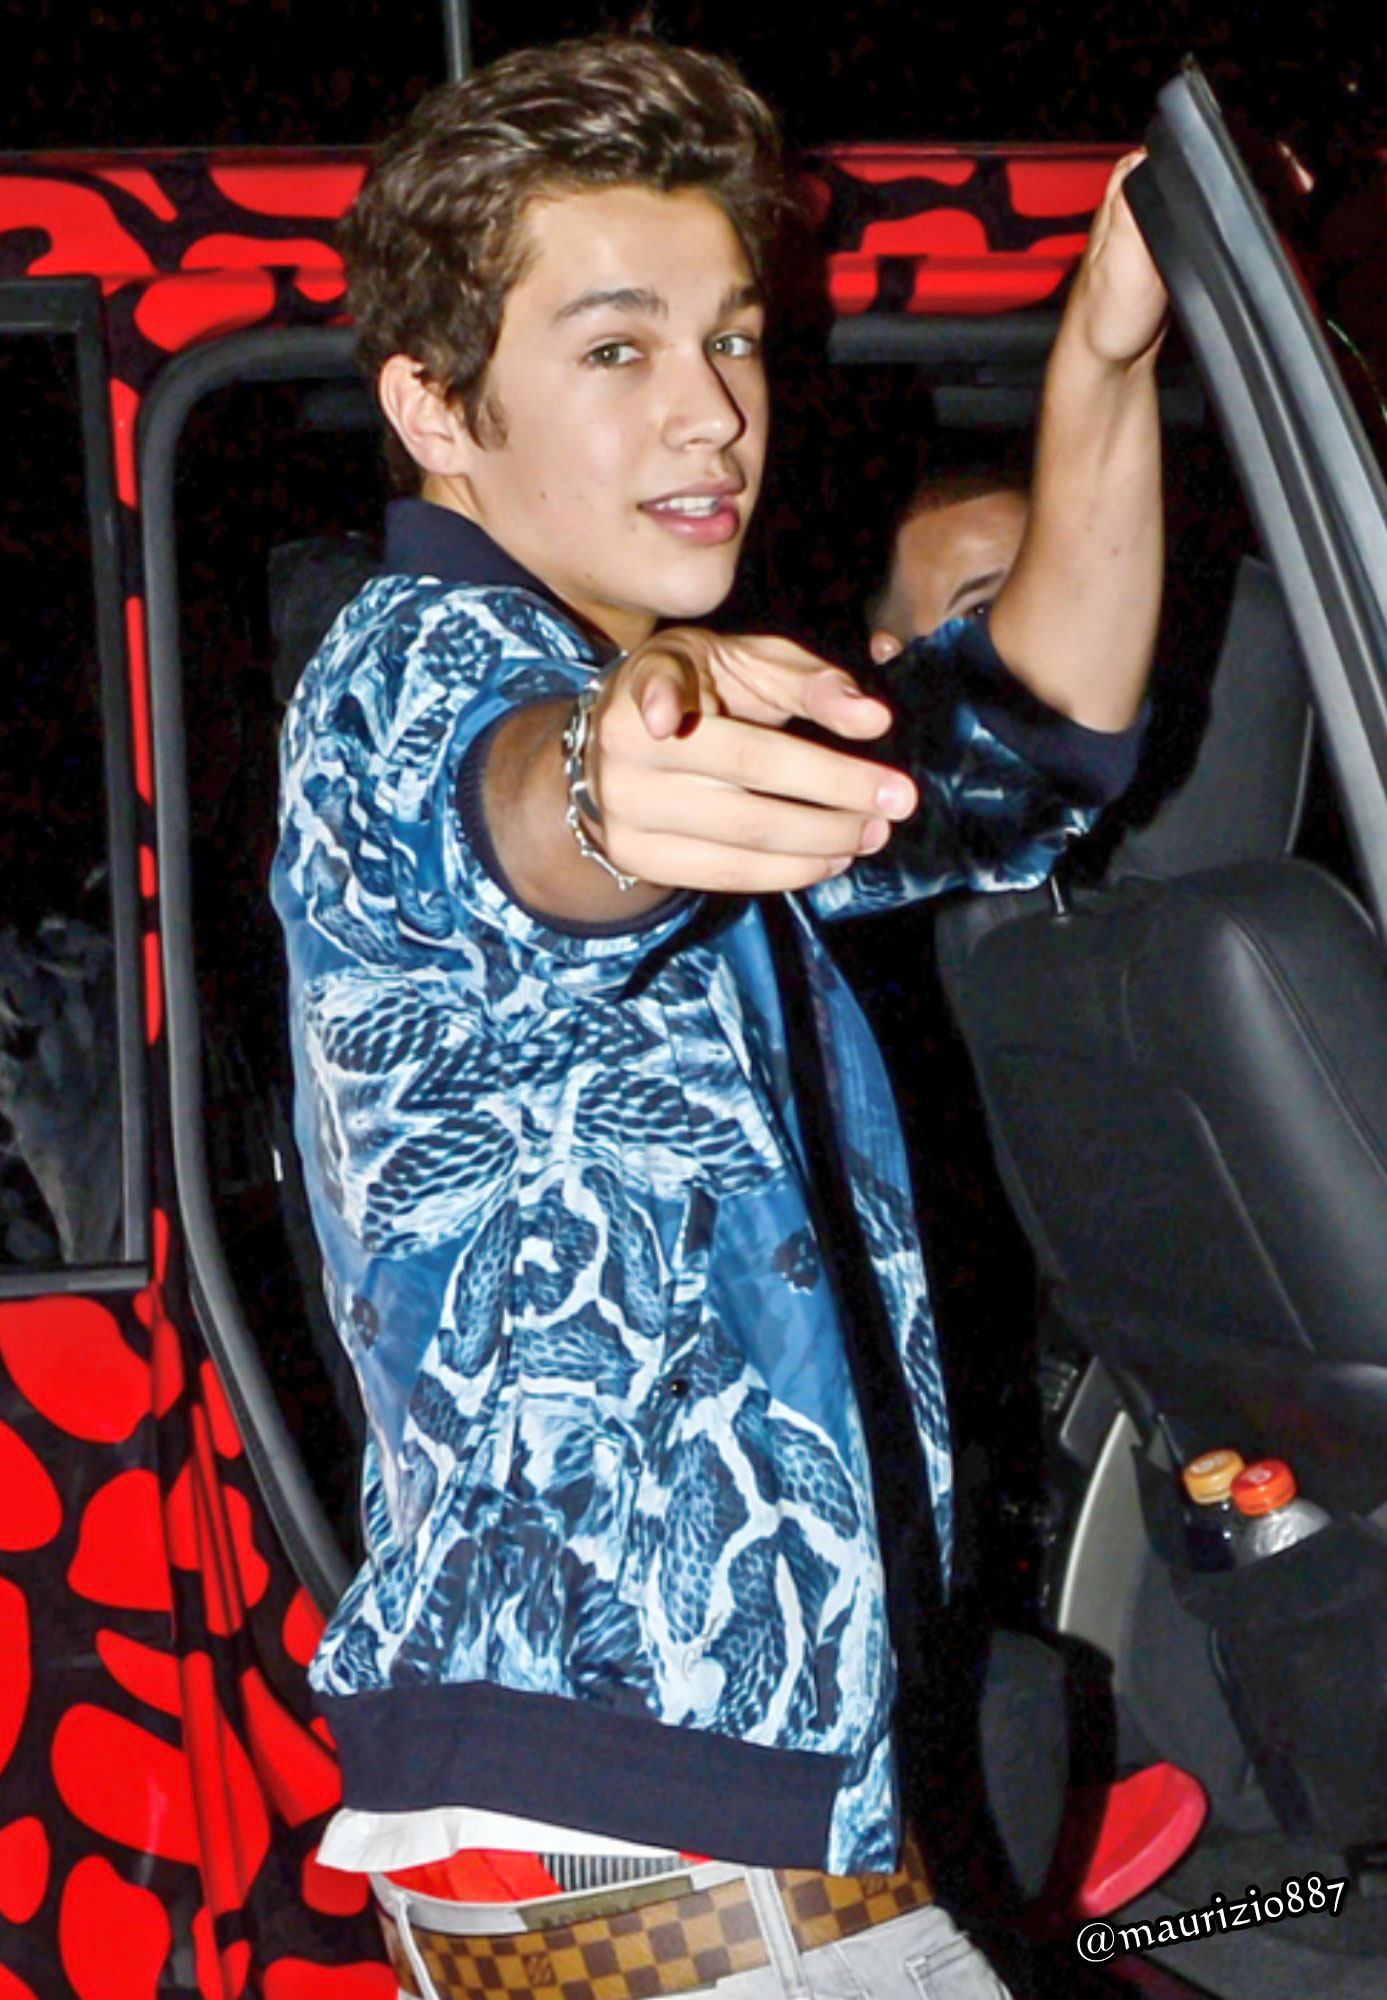 Pics Photos - Austin Mahone Camila Cabello Date Pix 3 Austin Mahone ...